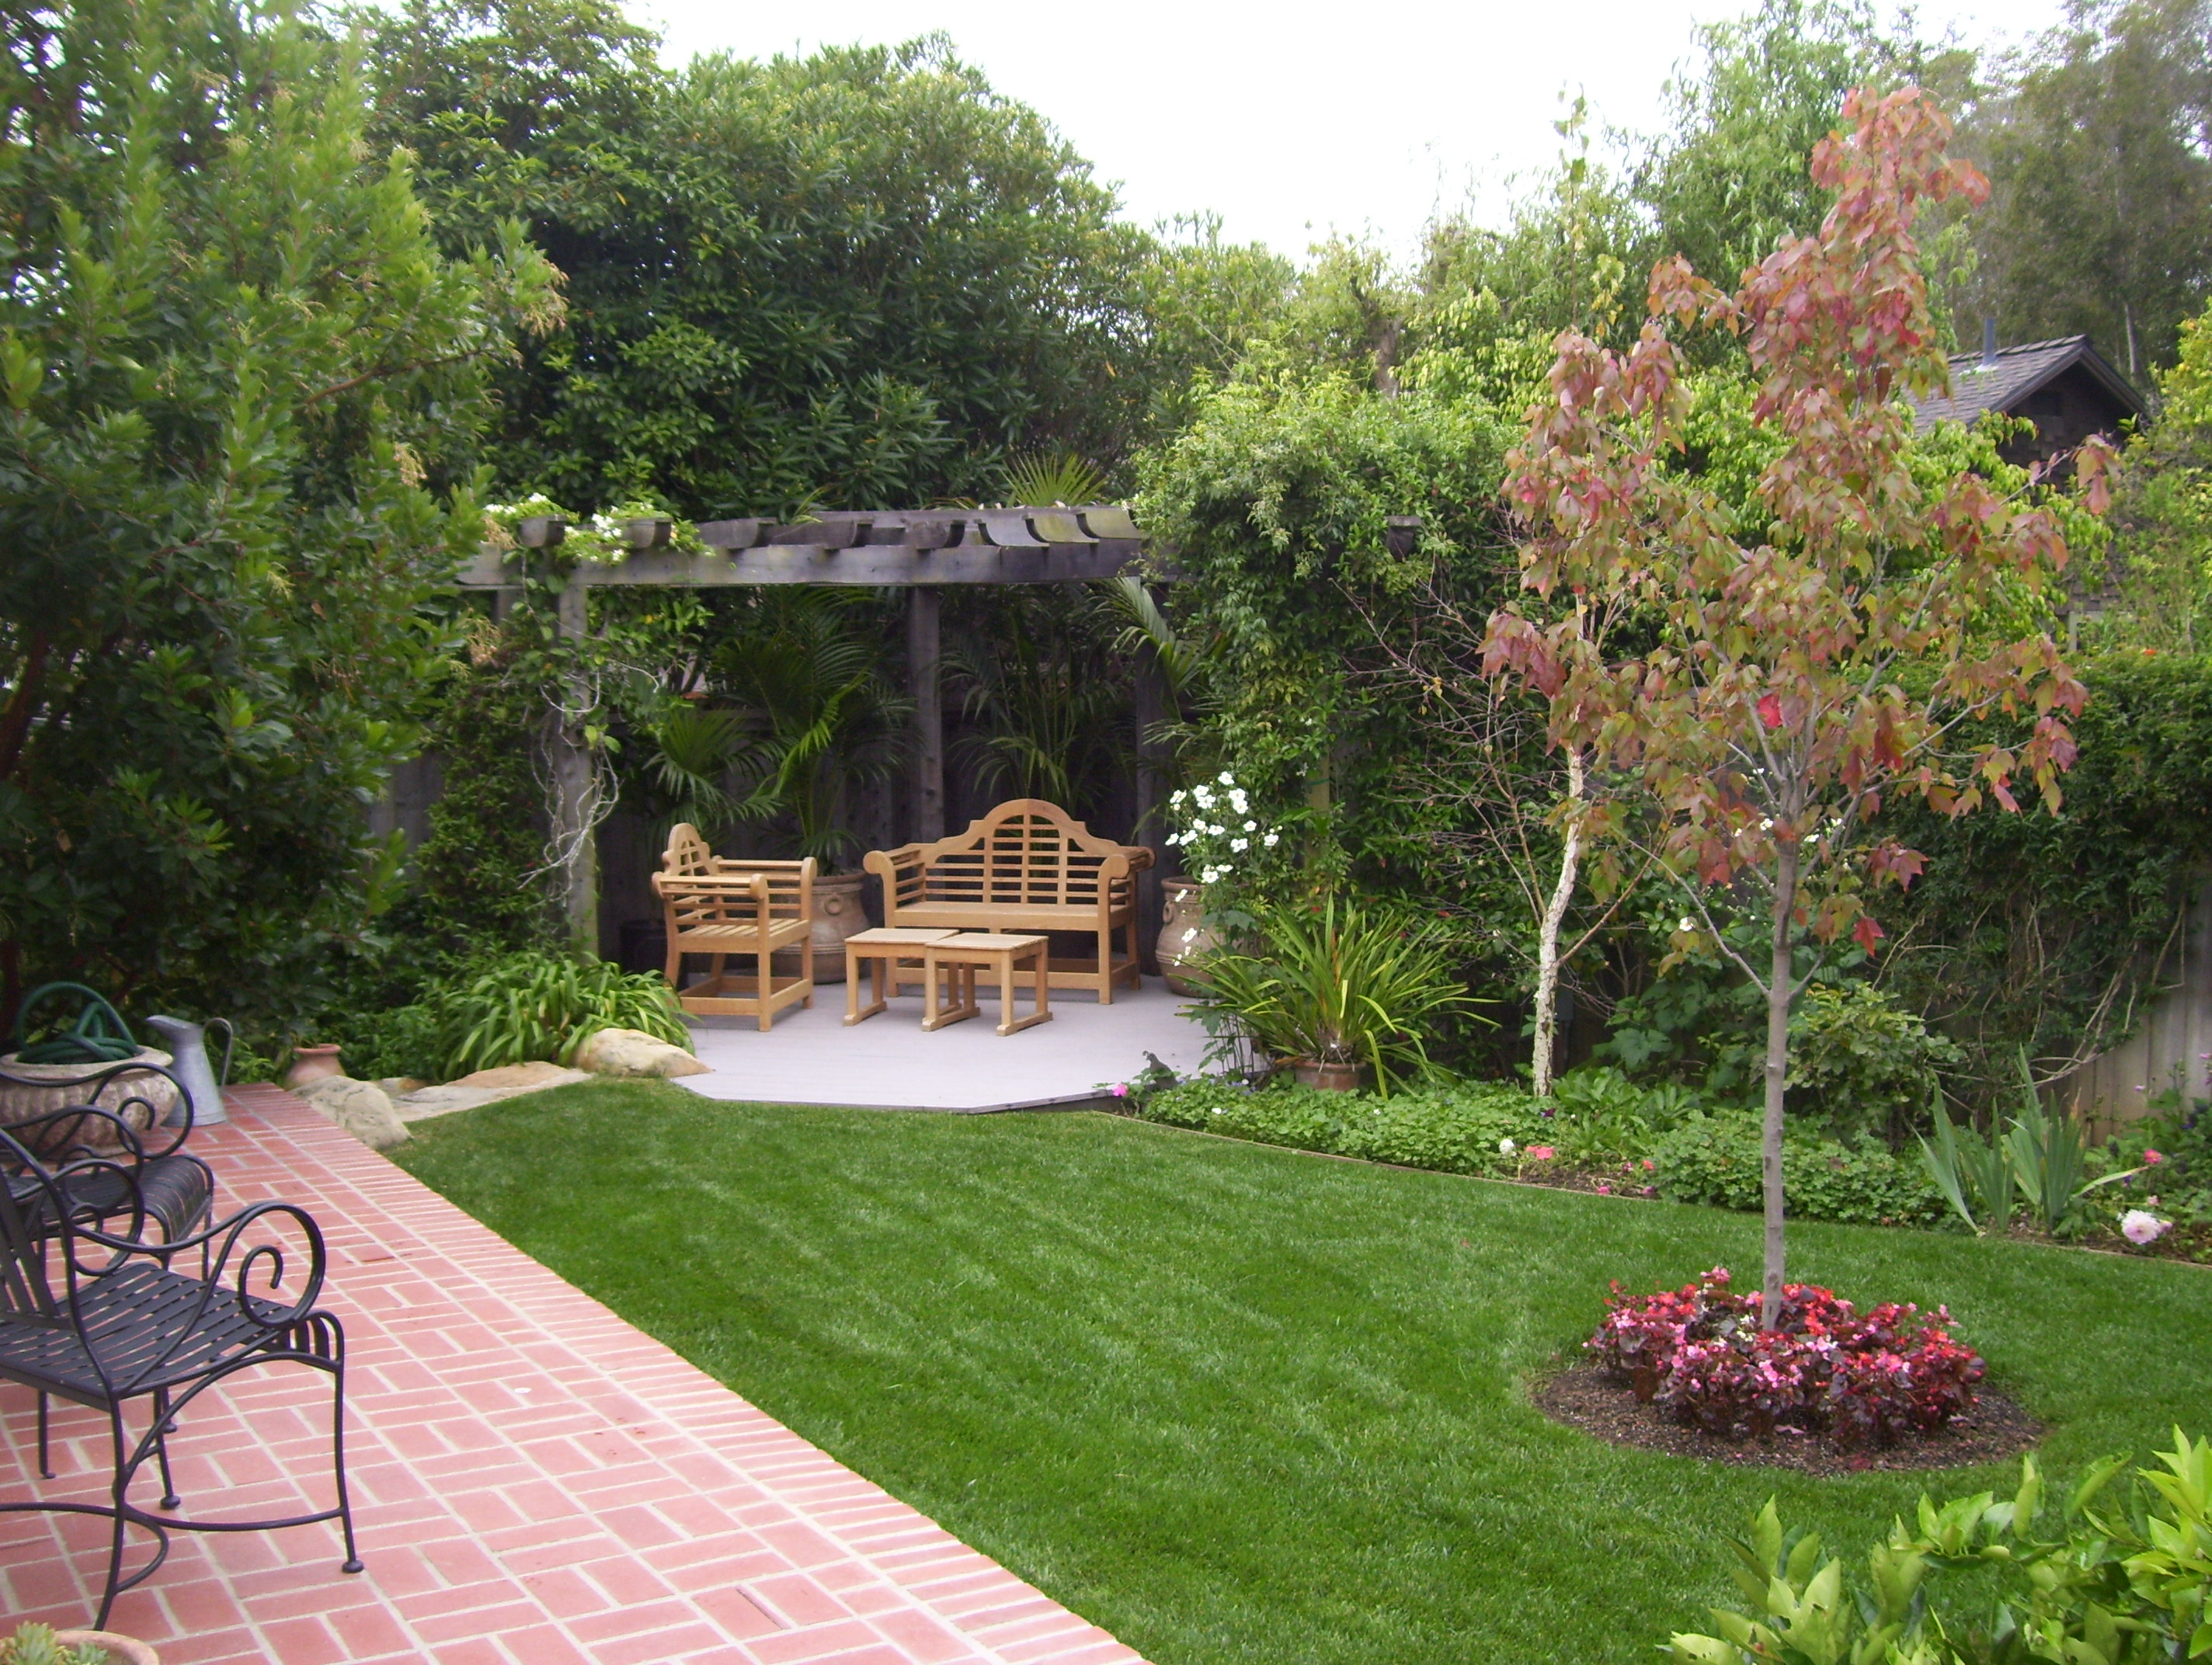 backyard landscaping ideas santa barbara down to earth On outdoor landscaping ideas